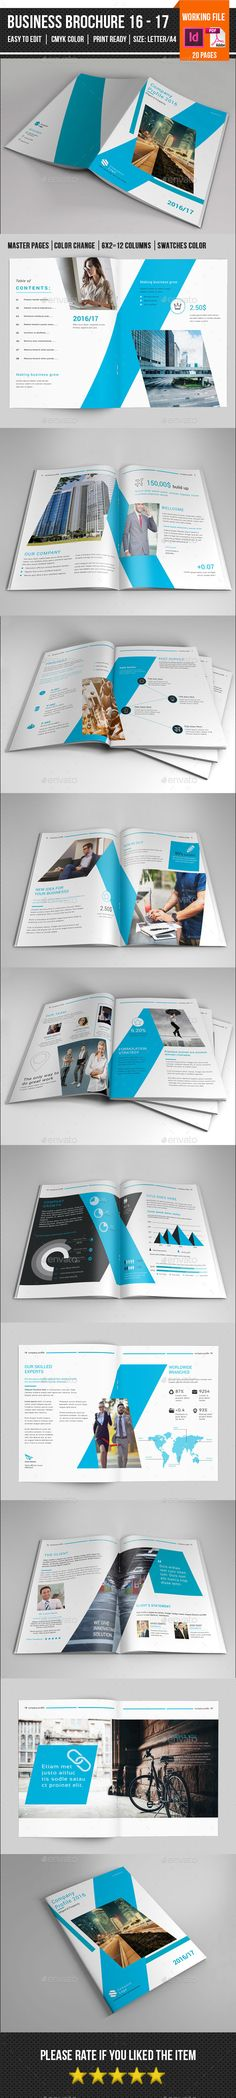 Medical Brochure Template Medical brochure, Brochure template - medical brochure template